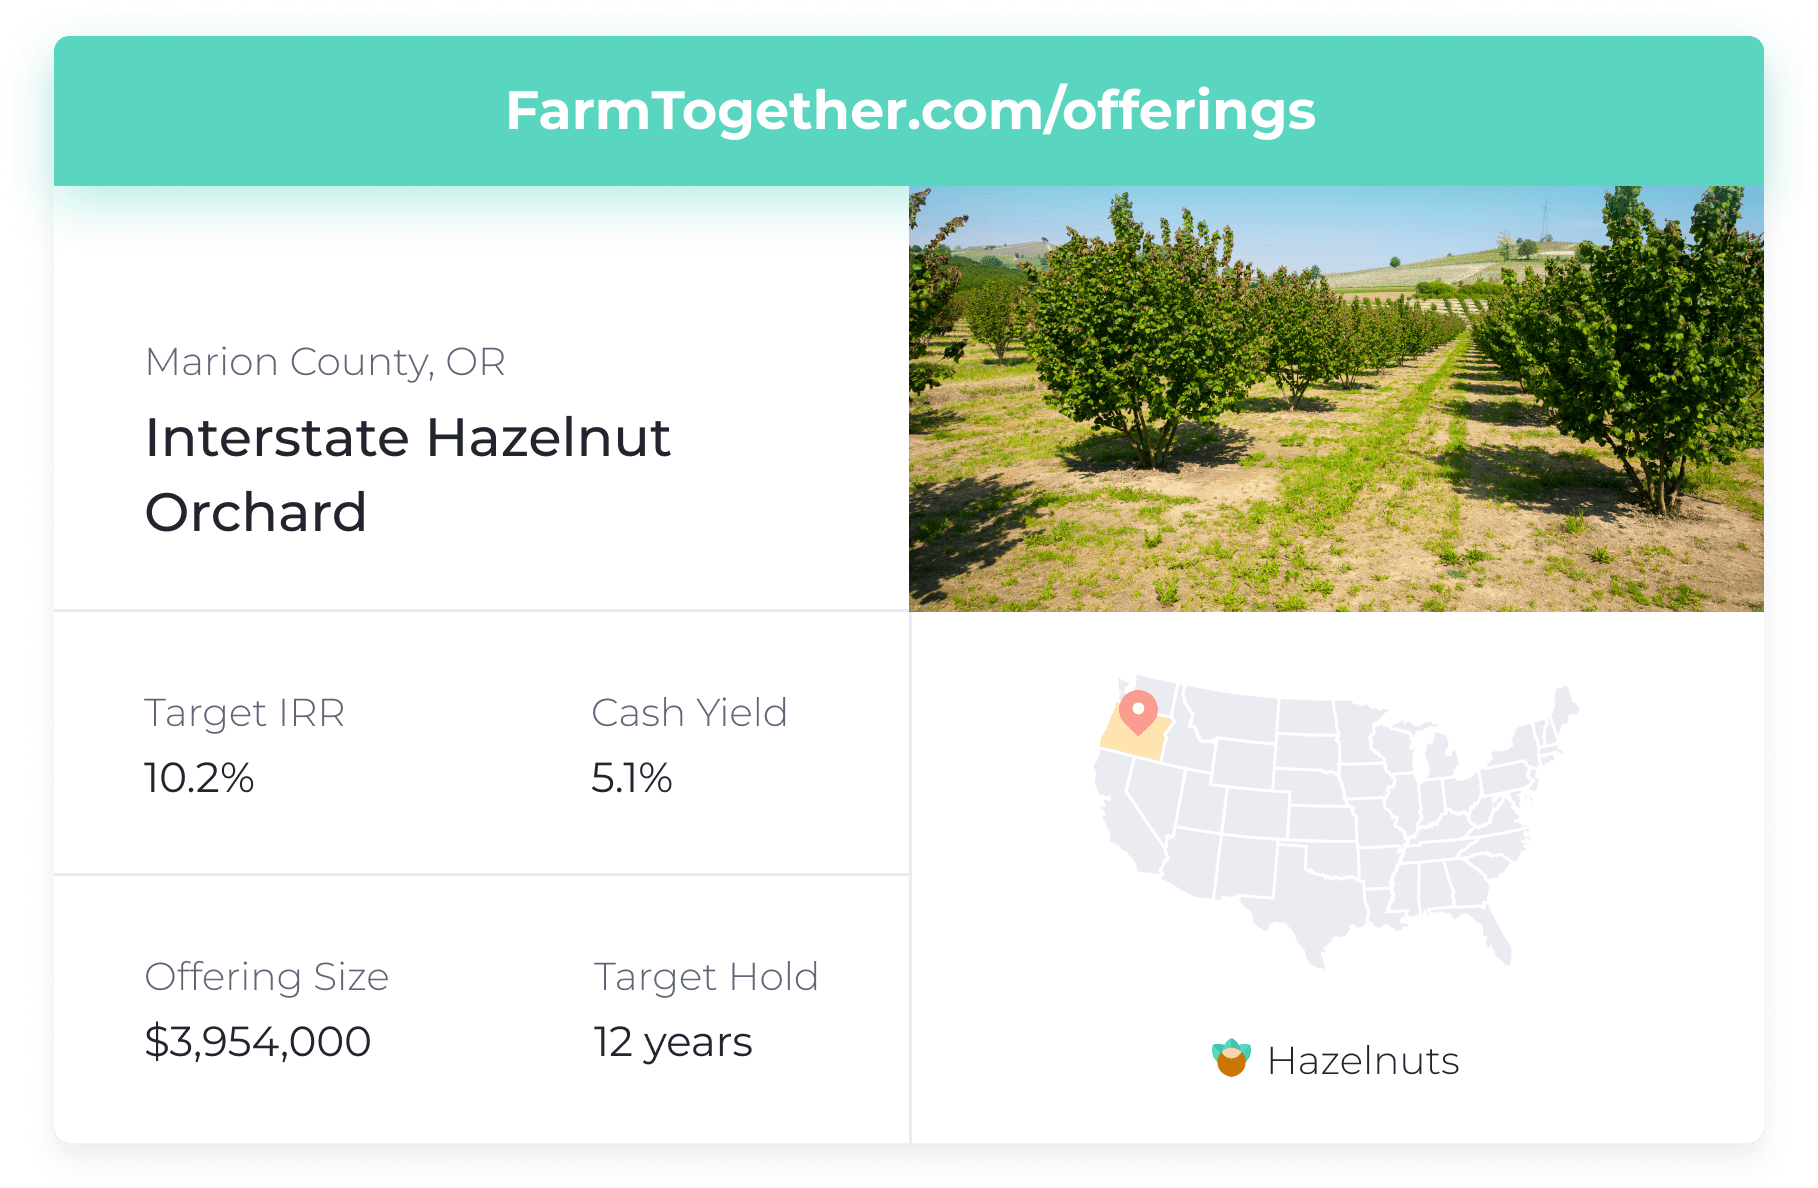 FarmTogether offering